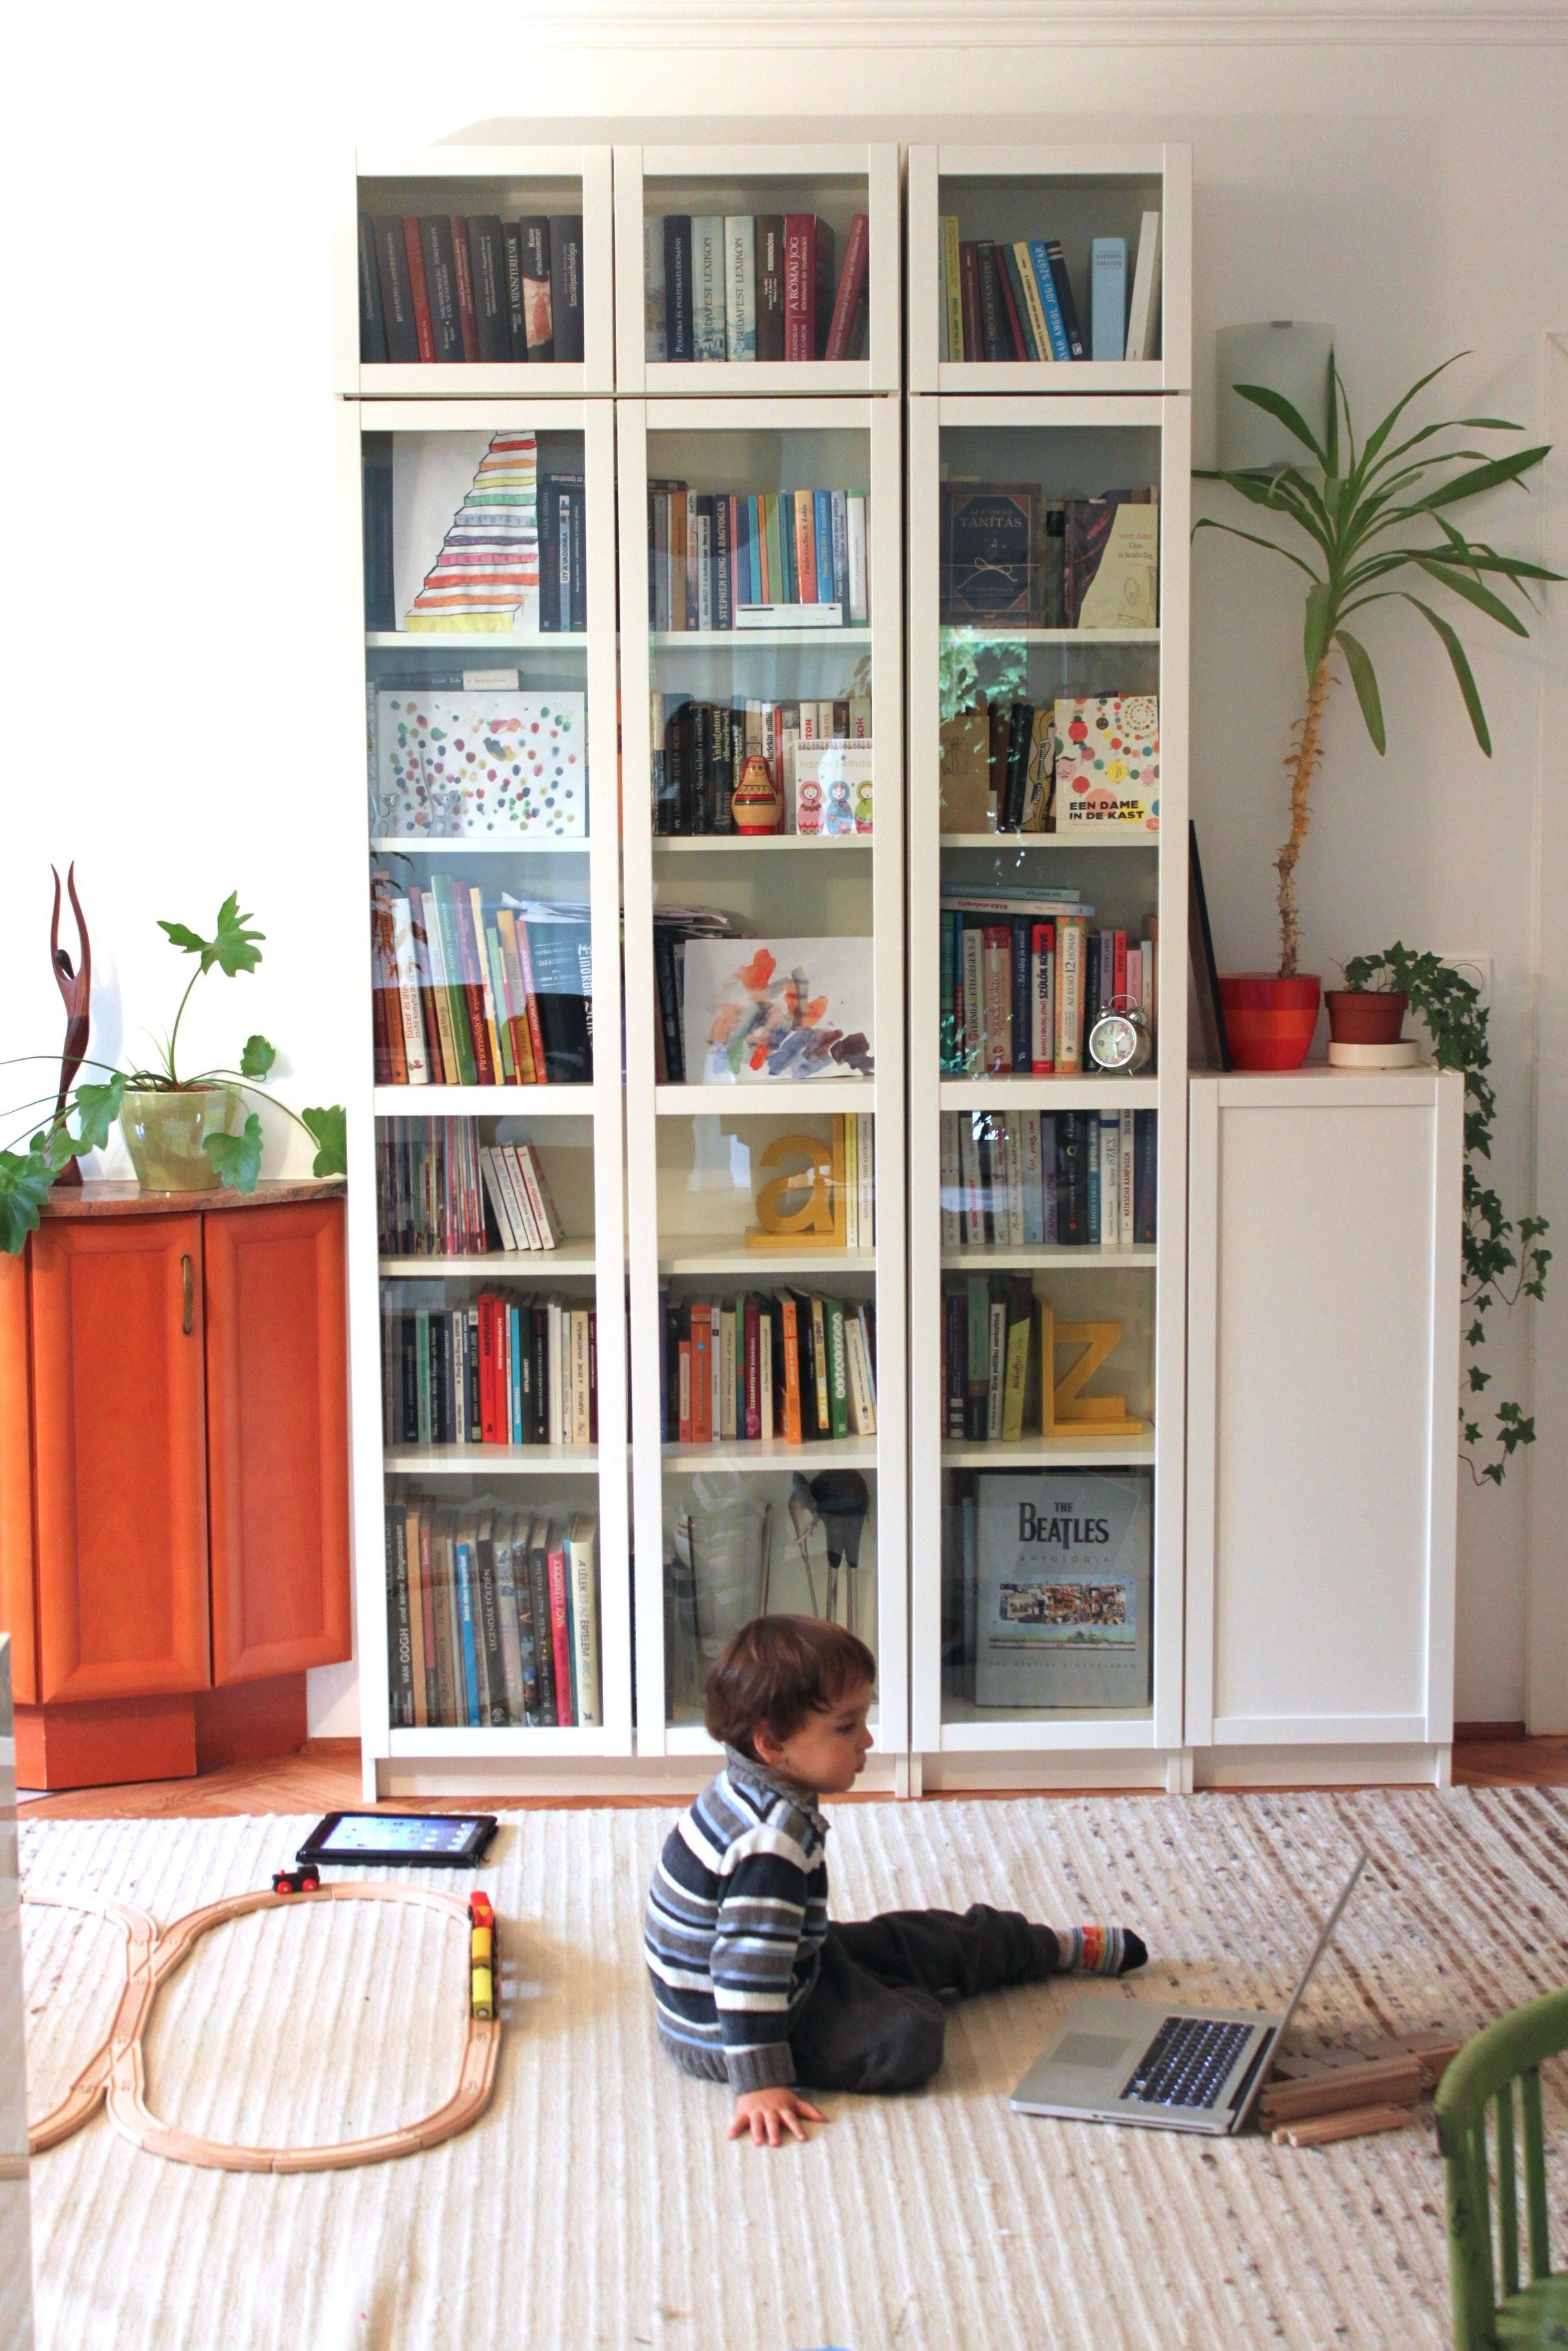 we were looking for mid height bookcases with glass doors for our